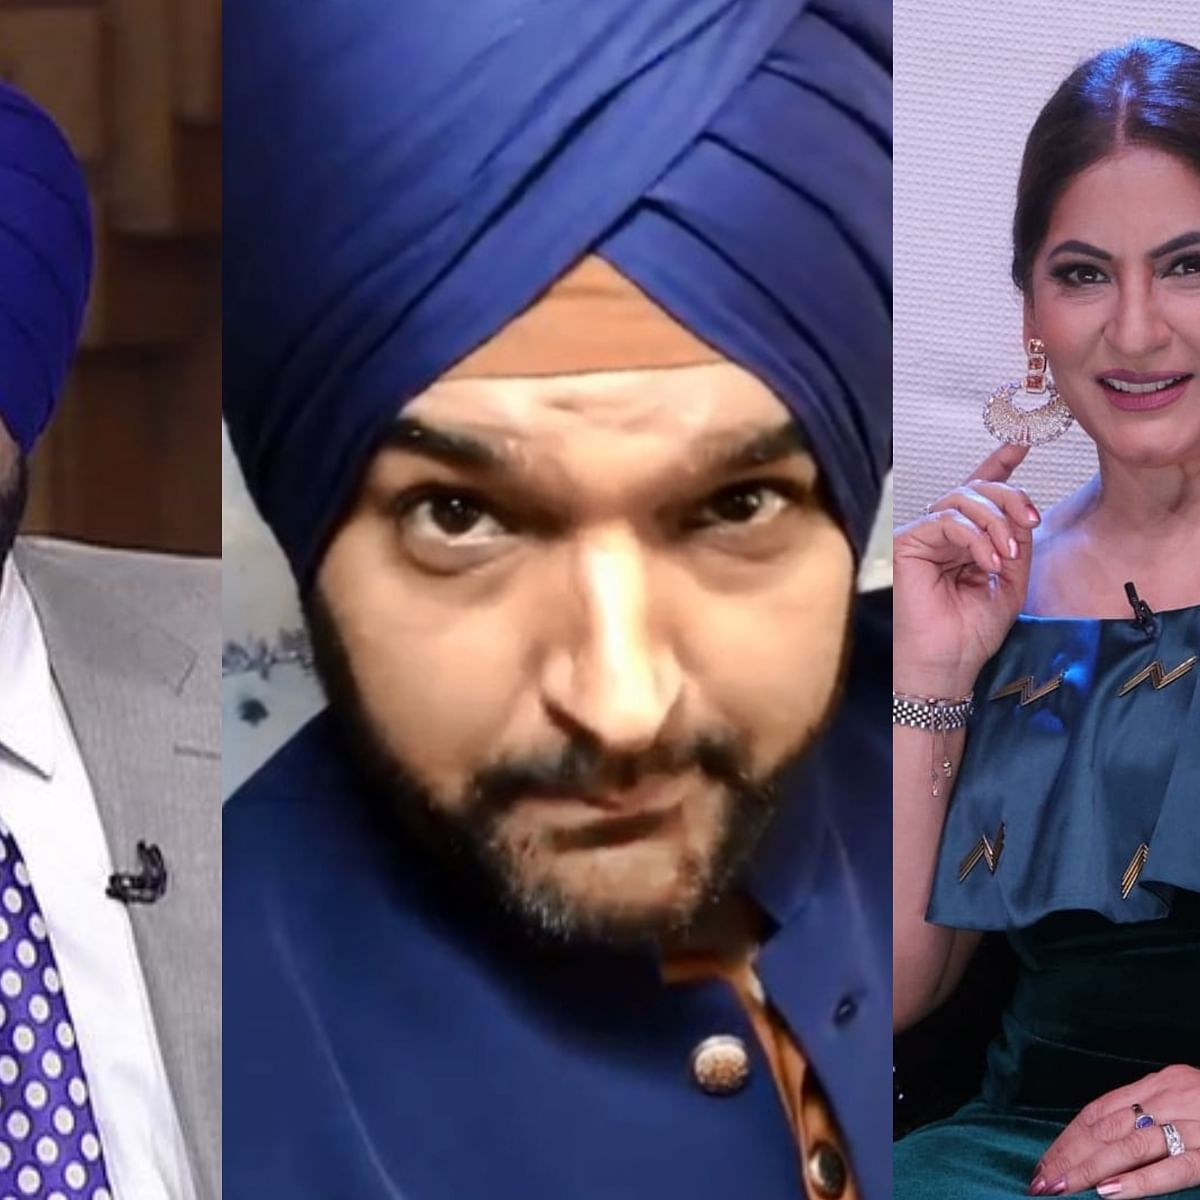 Watch Video: Kapil Sharma dresses up as Navjot Singh Sidhu, taunts Archana Puran Singh